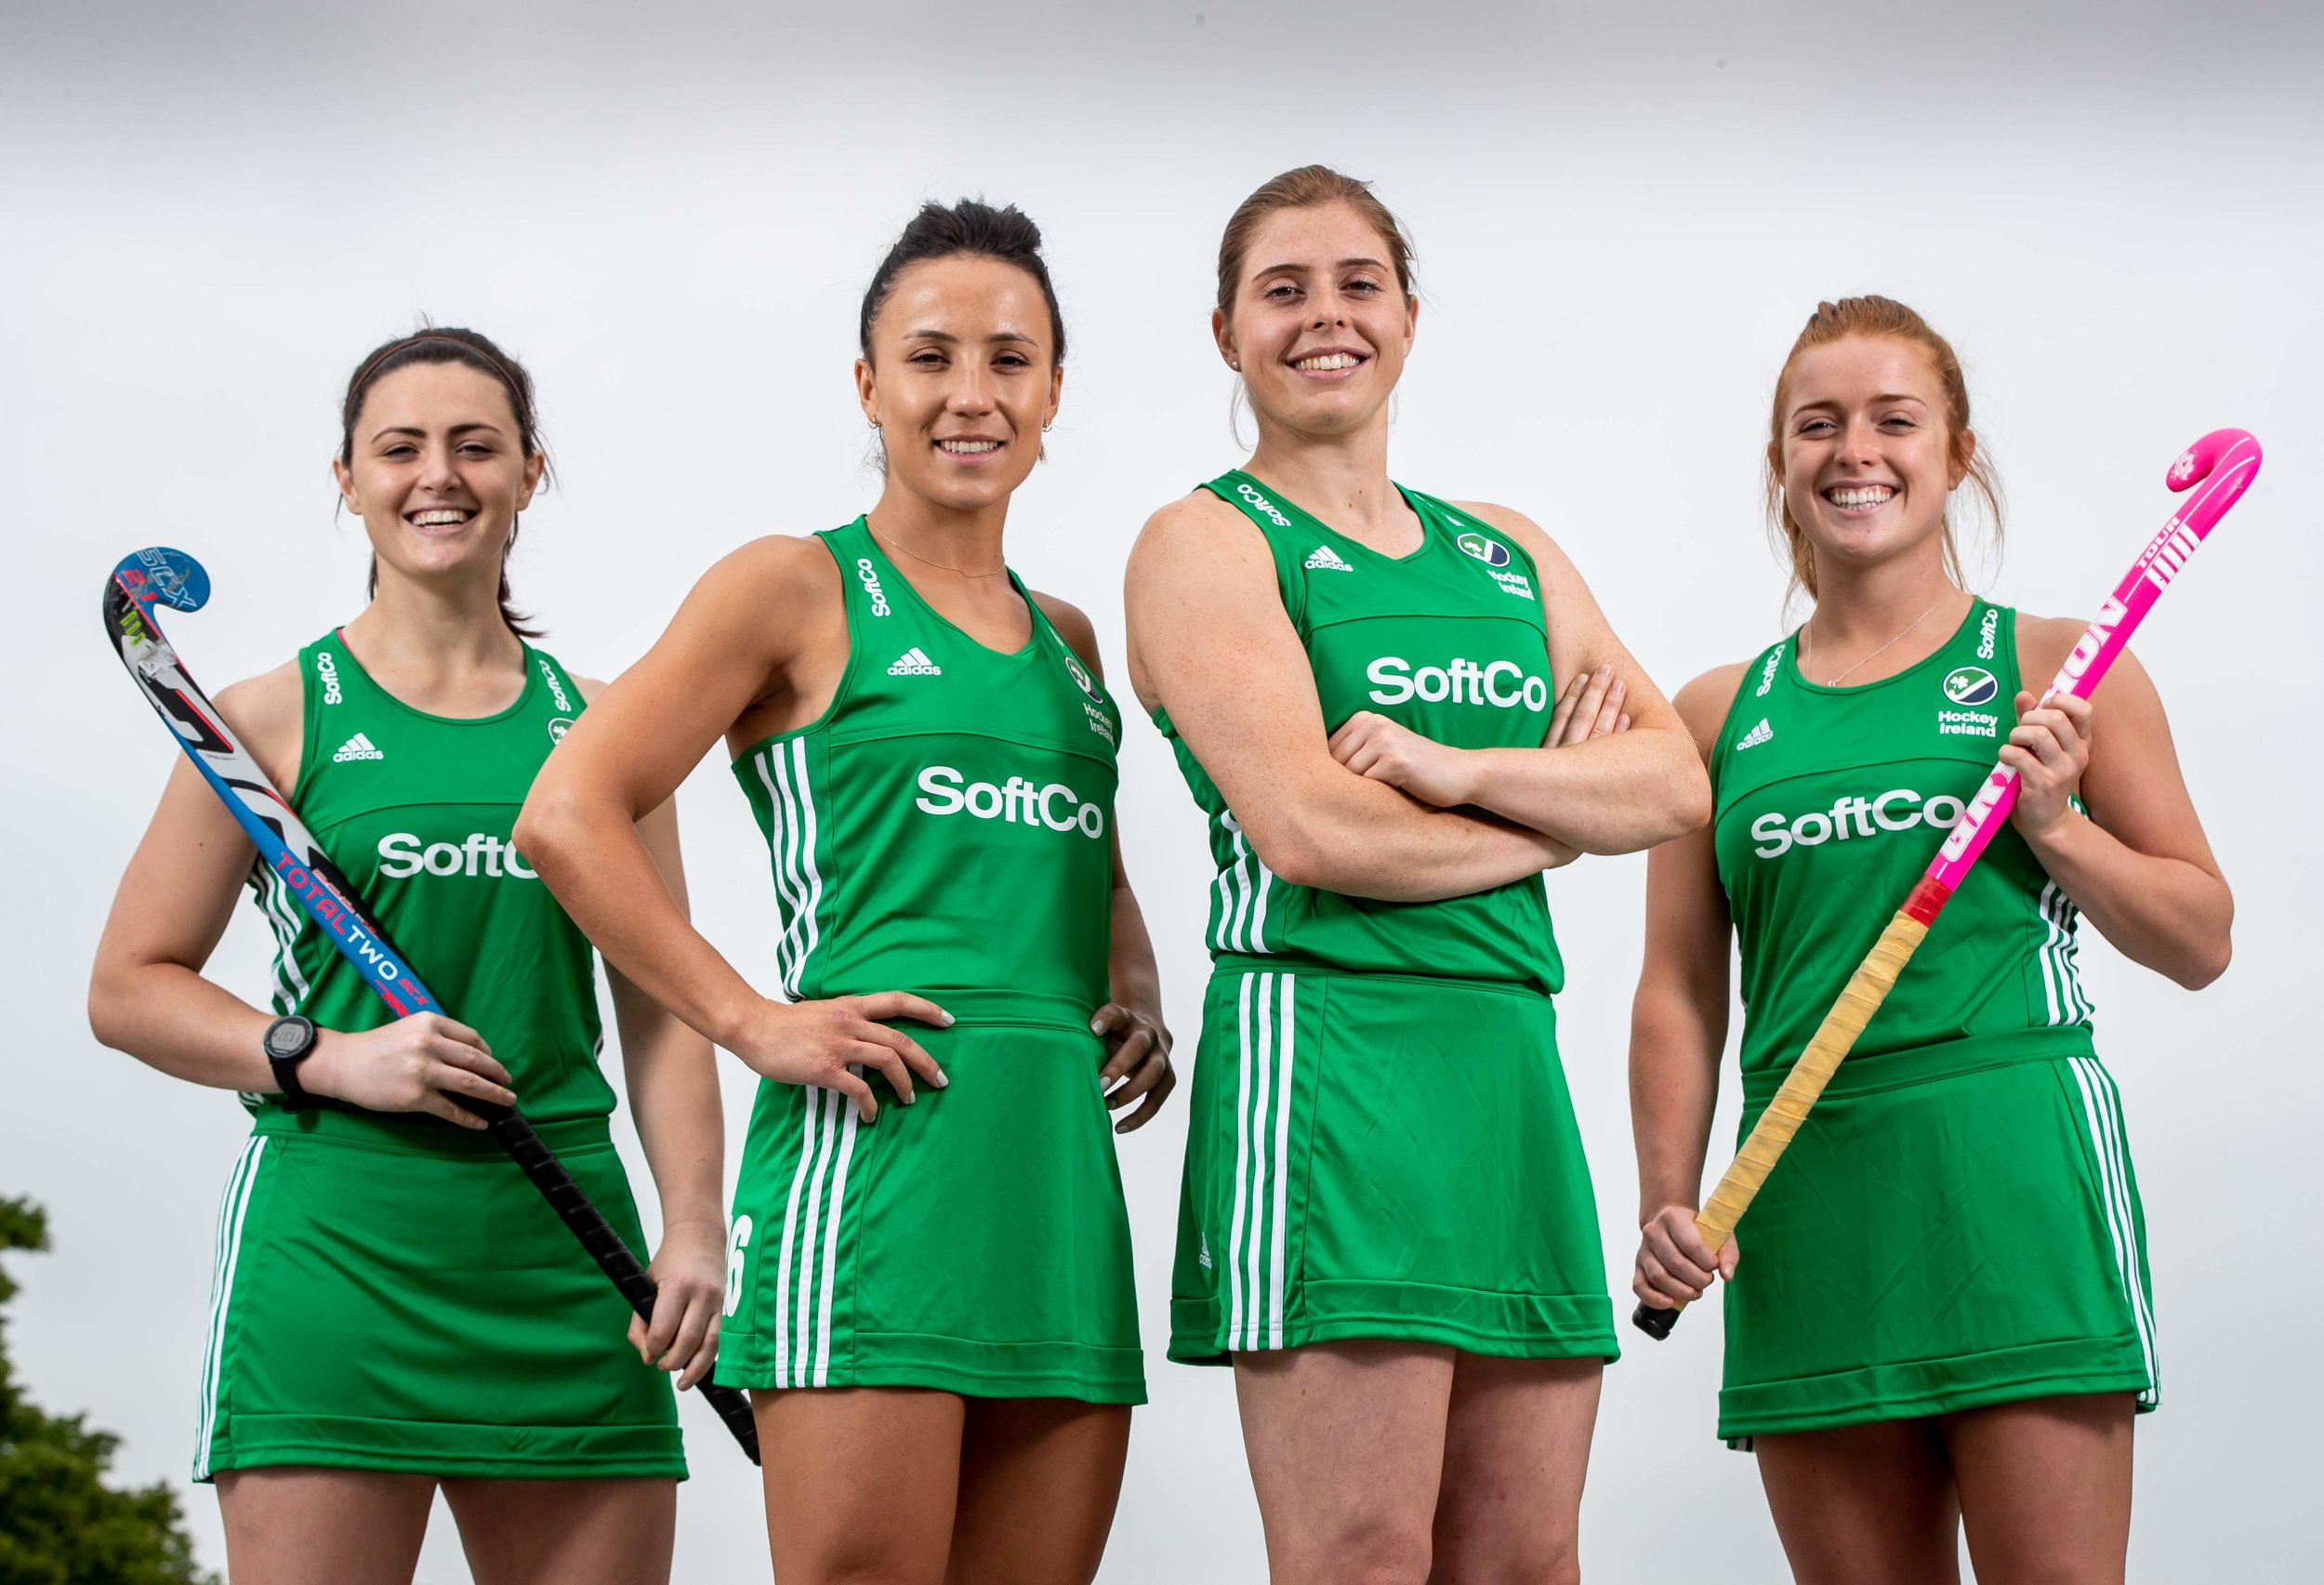 SoftCo is sponsoring the Ireland Women's World Cup Hockey Team